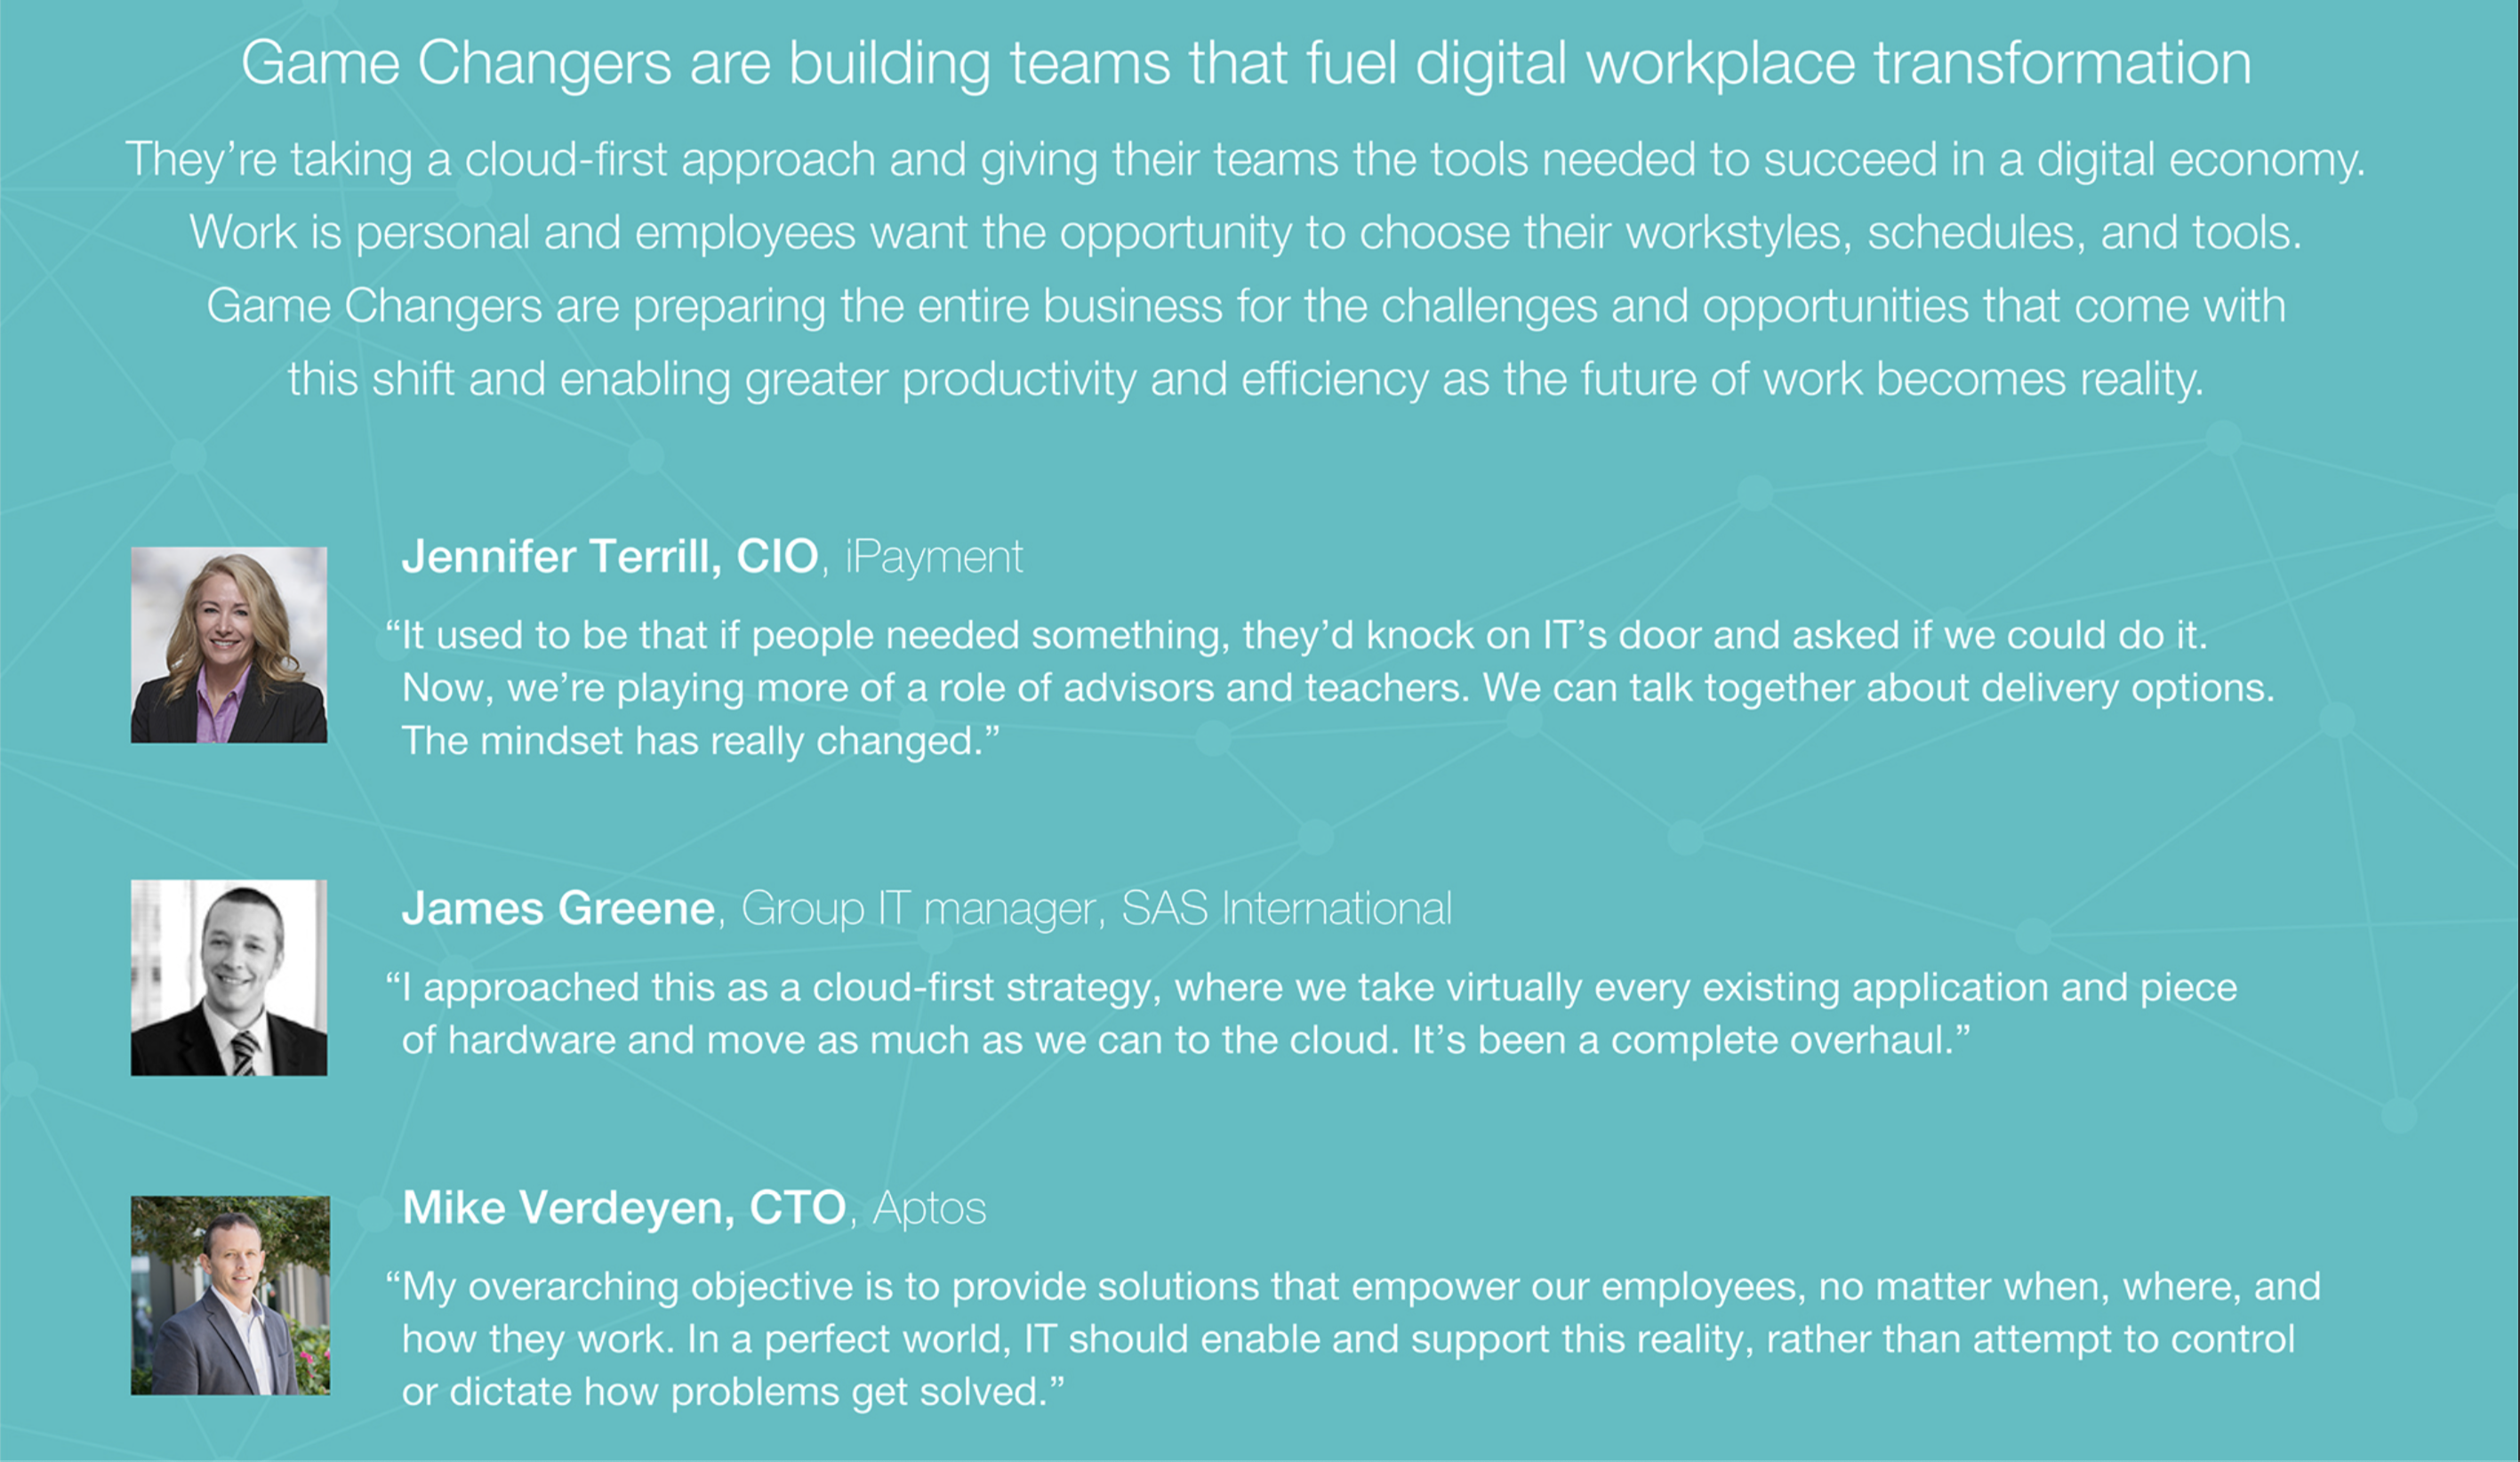 Game Changers are building teams that fuel digital workplace transformation